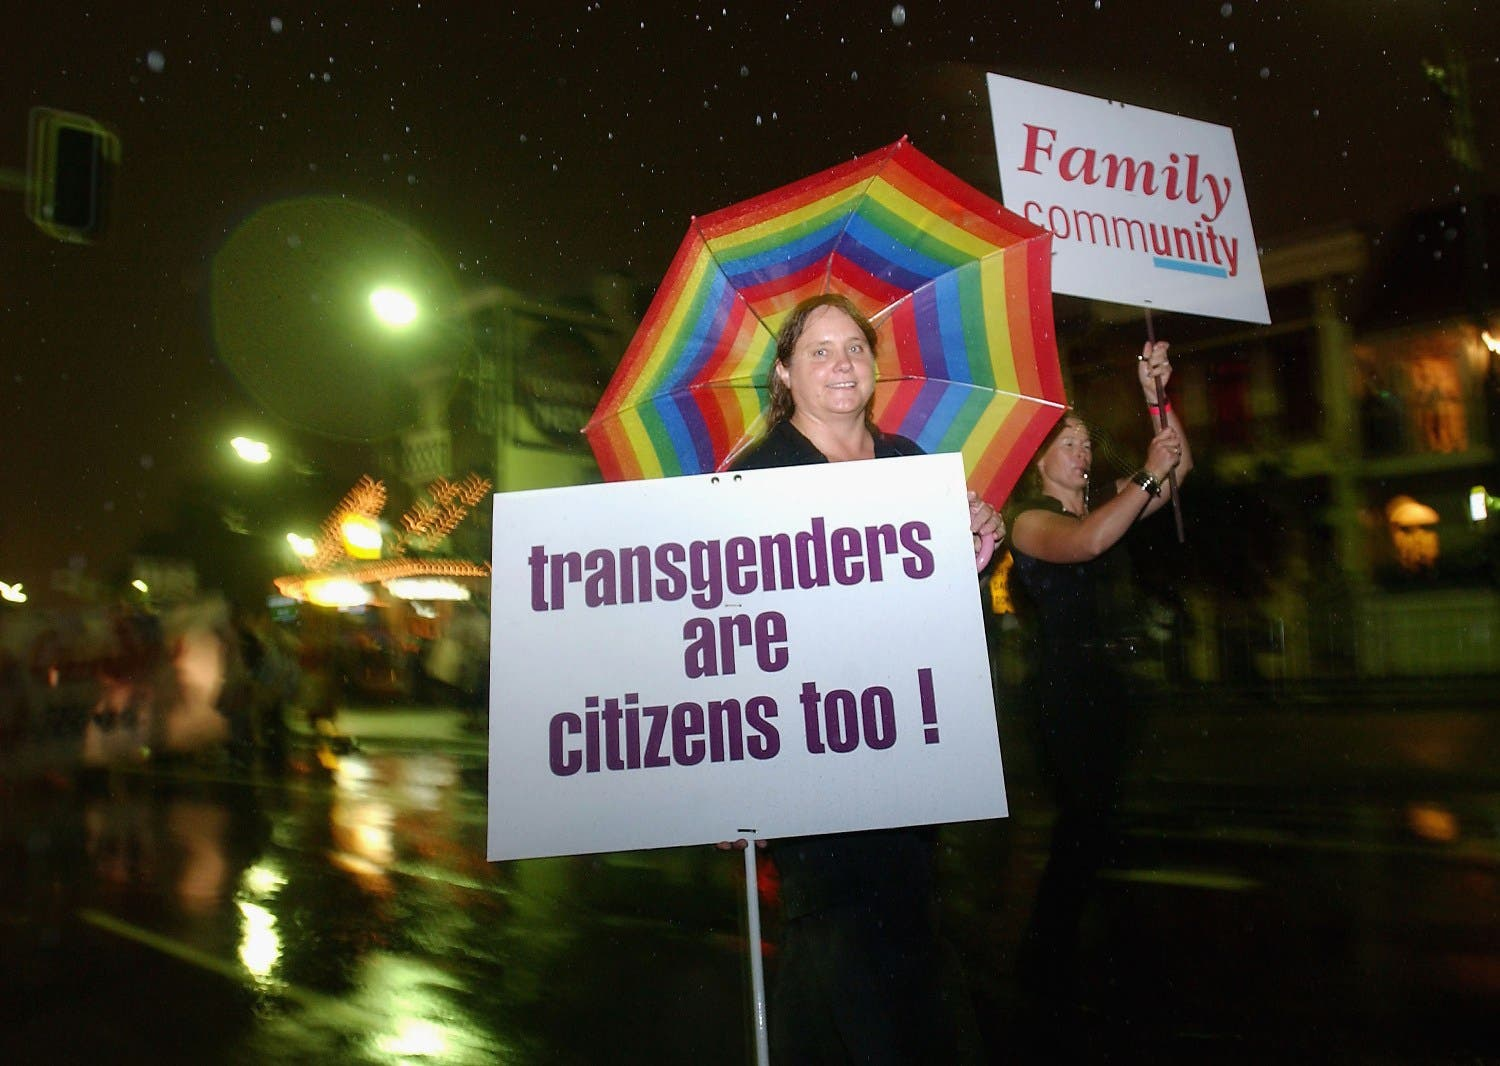 Transgenders outside Lebanon campaign to be equal citizens. Pakistan has come under the spotlight for its transgender